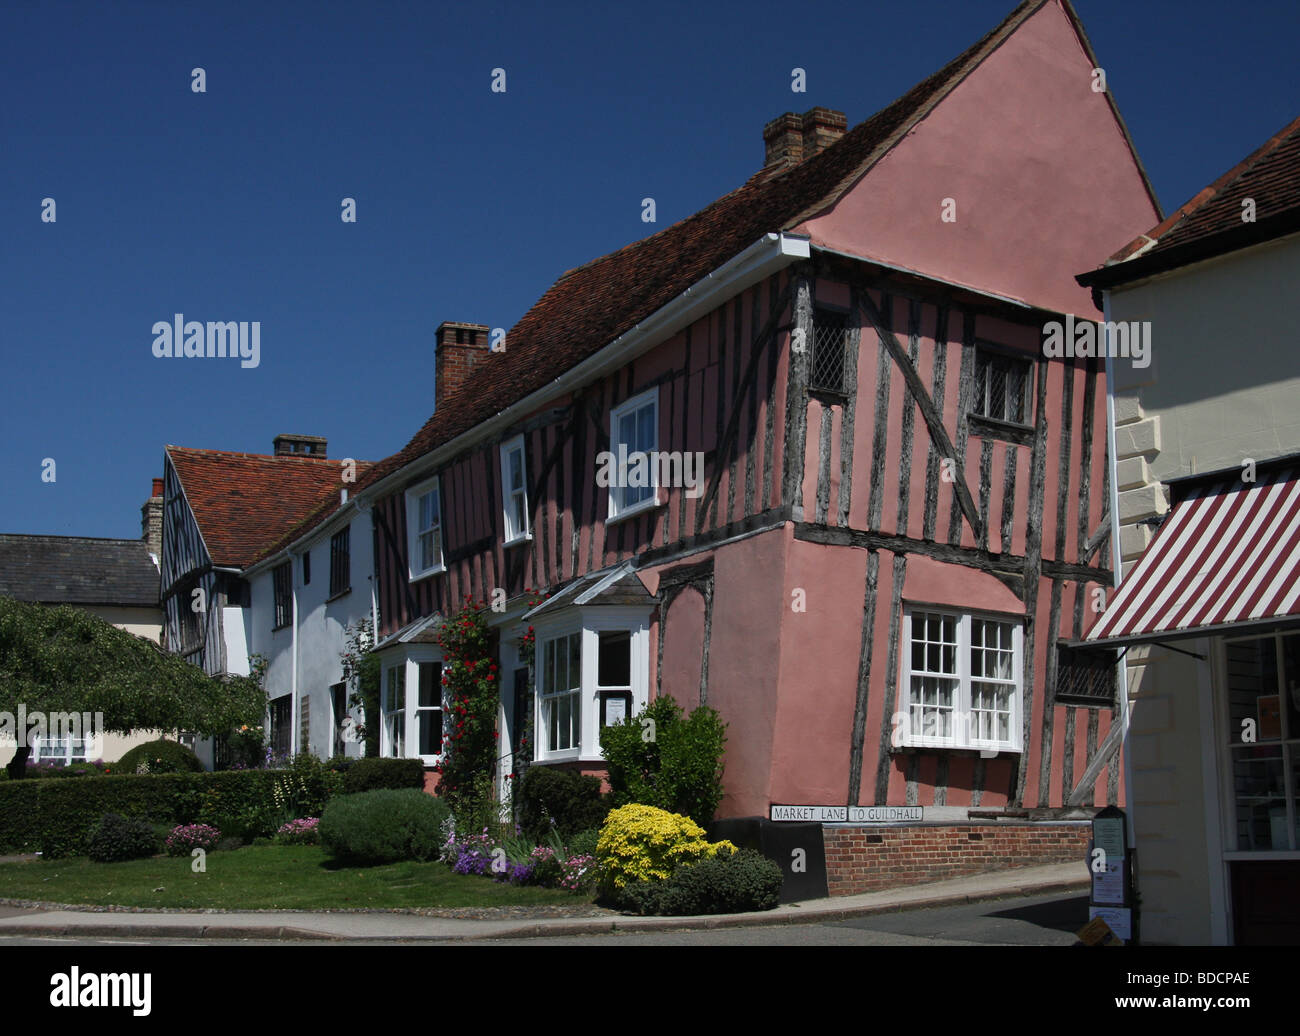 Lavenham crooked house 31st May 2009 - Stock Image